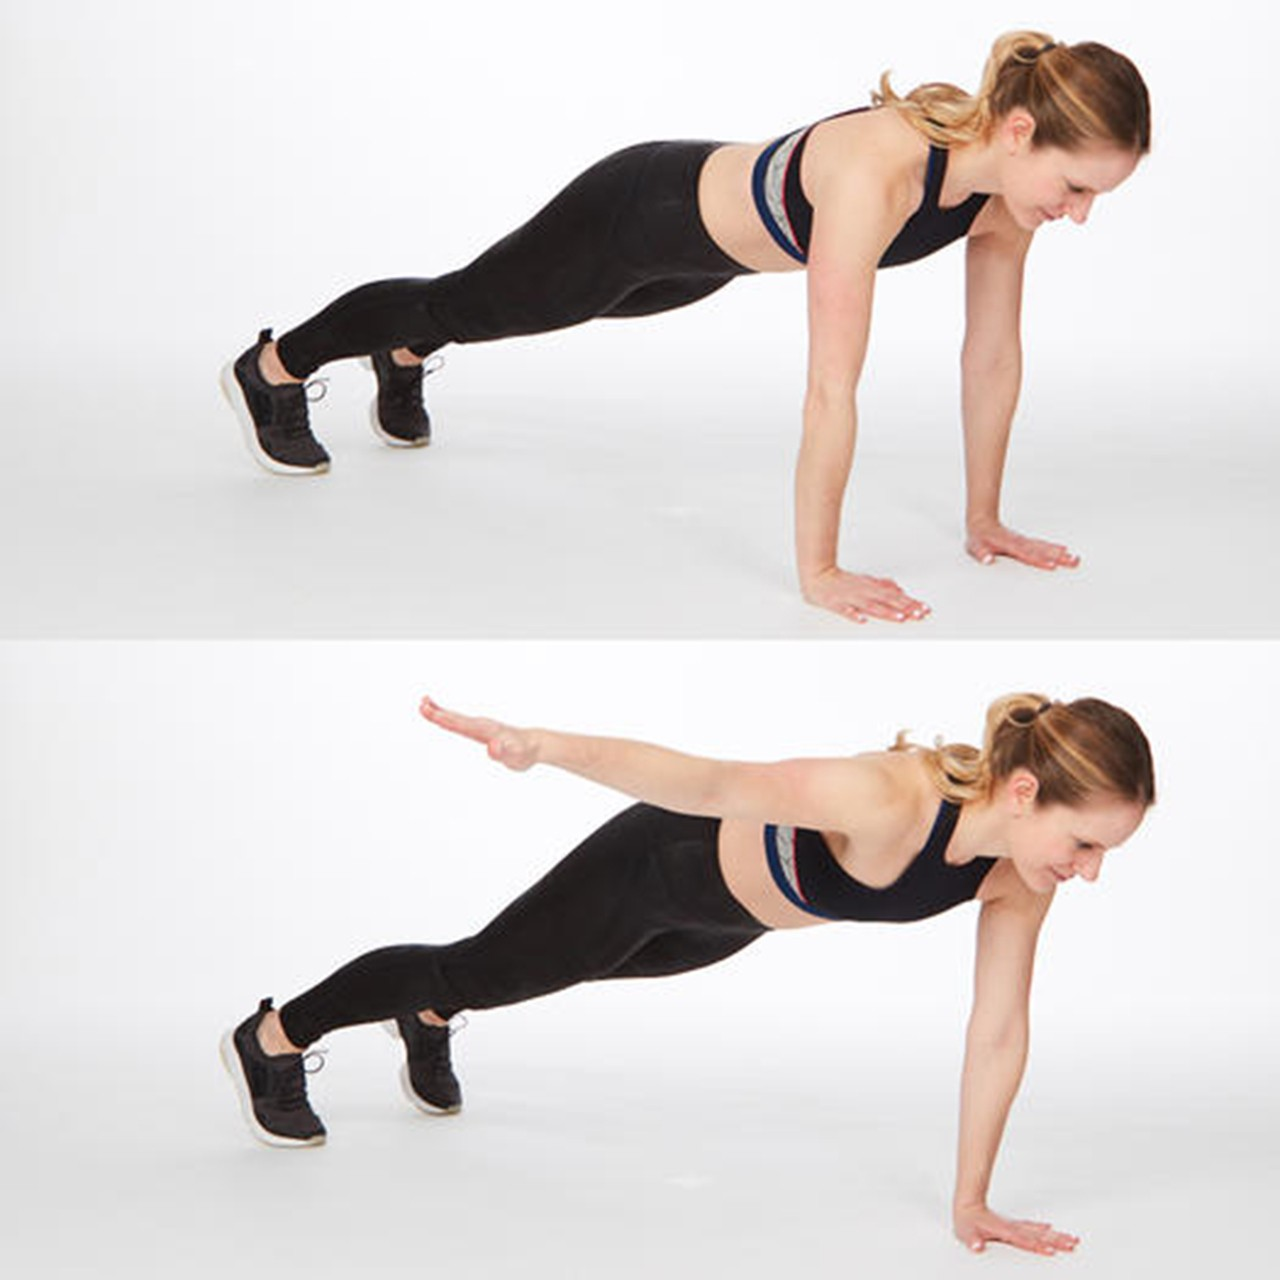 plank-with-lateral-arm-raise.jpg